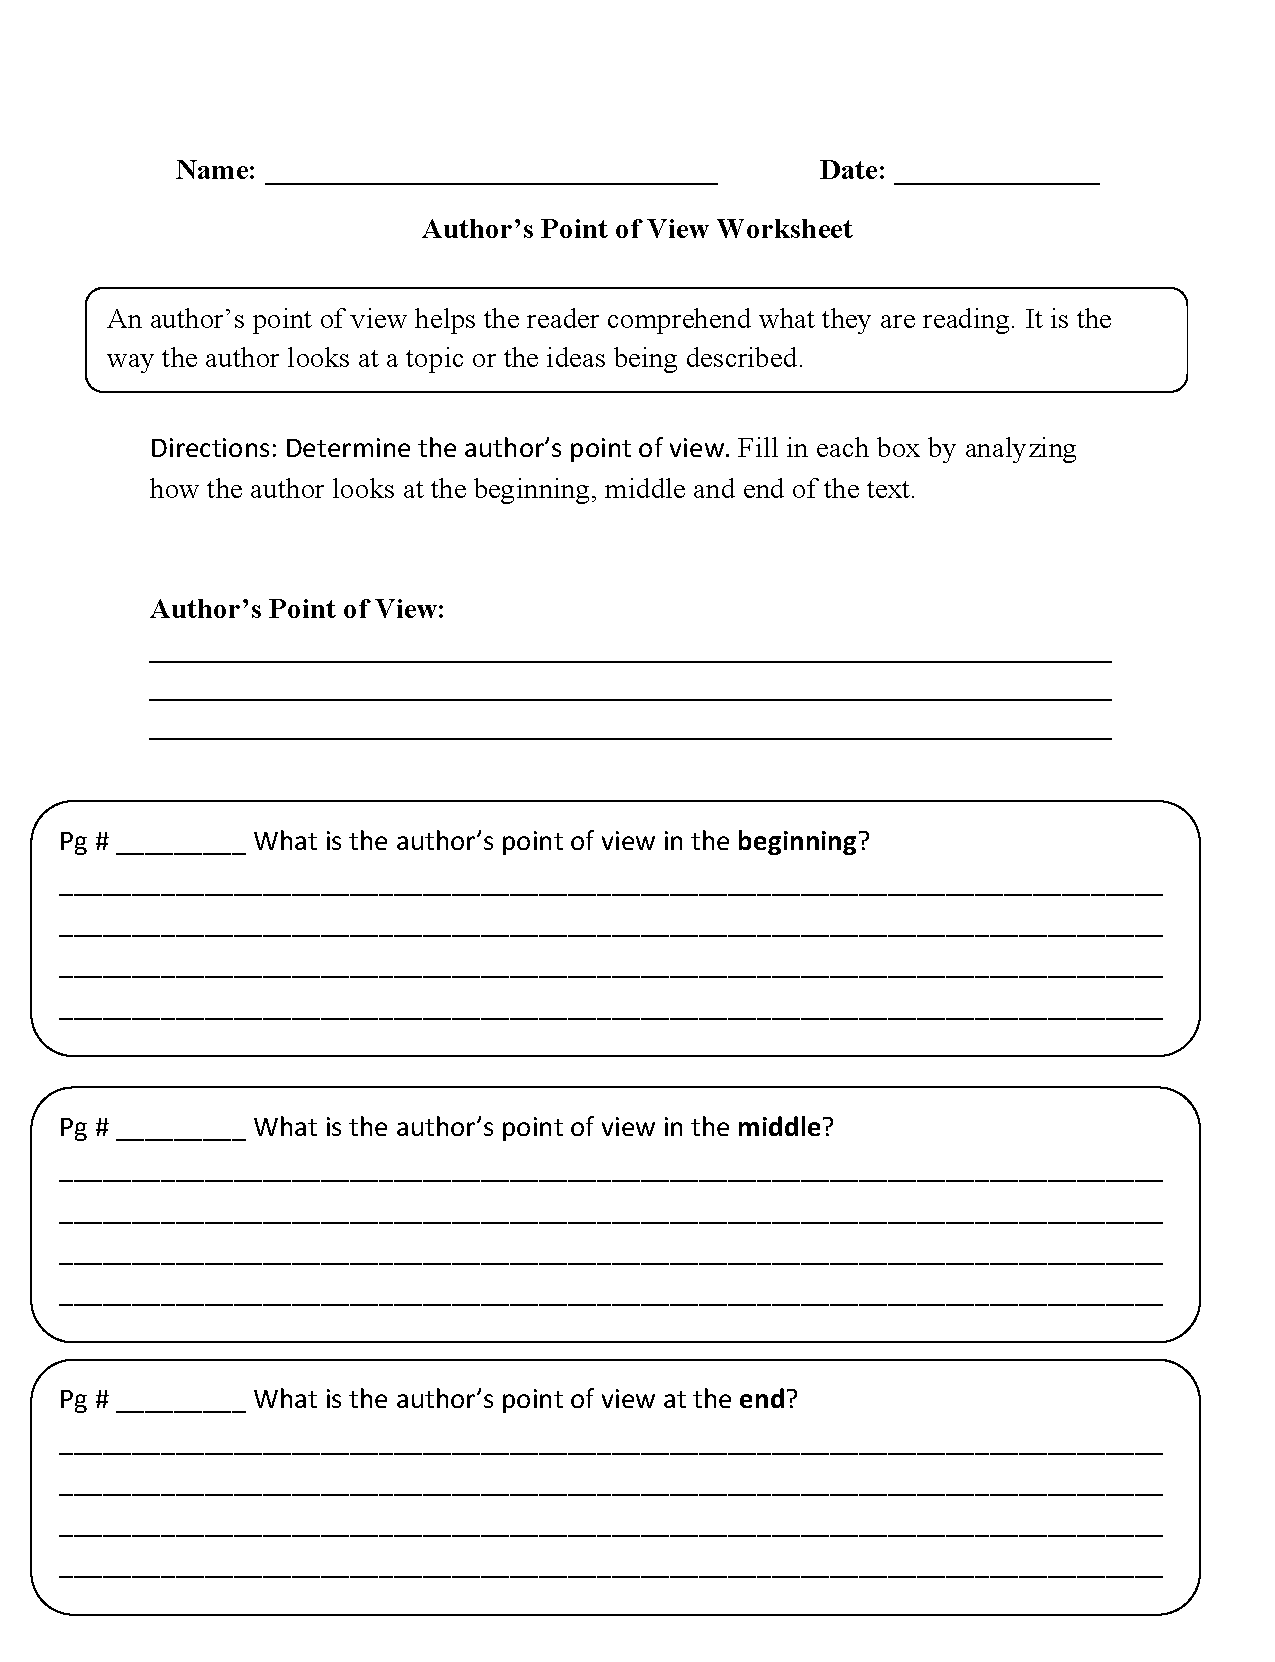 Weirdmailus  Gorgeous Englishlinxcom  Point Of View Worksheets With Inspiring Point Of View Worksheets With Agreeable Making Change From A Dollar Worksheets Also Free Printable Earth Science Worksheets In Addition Schedule Planning Worksheet And Diagramming Sentences Practice Worksheets As Well As Th Grade Fraction Worksheets Additionally Algebra A Worksheets From Englishlinxcom With Weirdmailus  Inspiring Englishlinxcom  Point Of View Worksheets With Agreeable Point Of View Worksheets And Gorgeous Making Change From A Dollar Worksheets Also Free Printable Earth Science Worksheets In Addition Schedule Planning Worksheet From Englishlinxcom